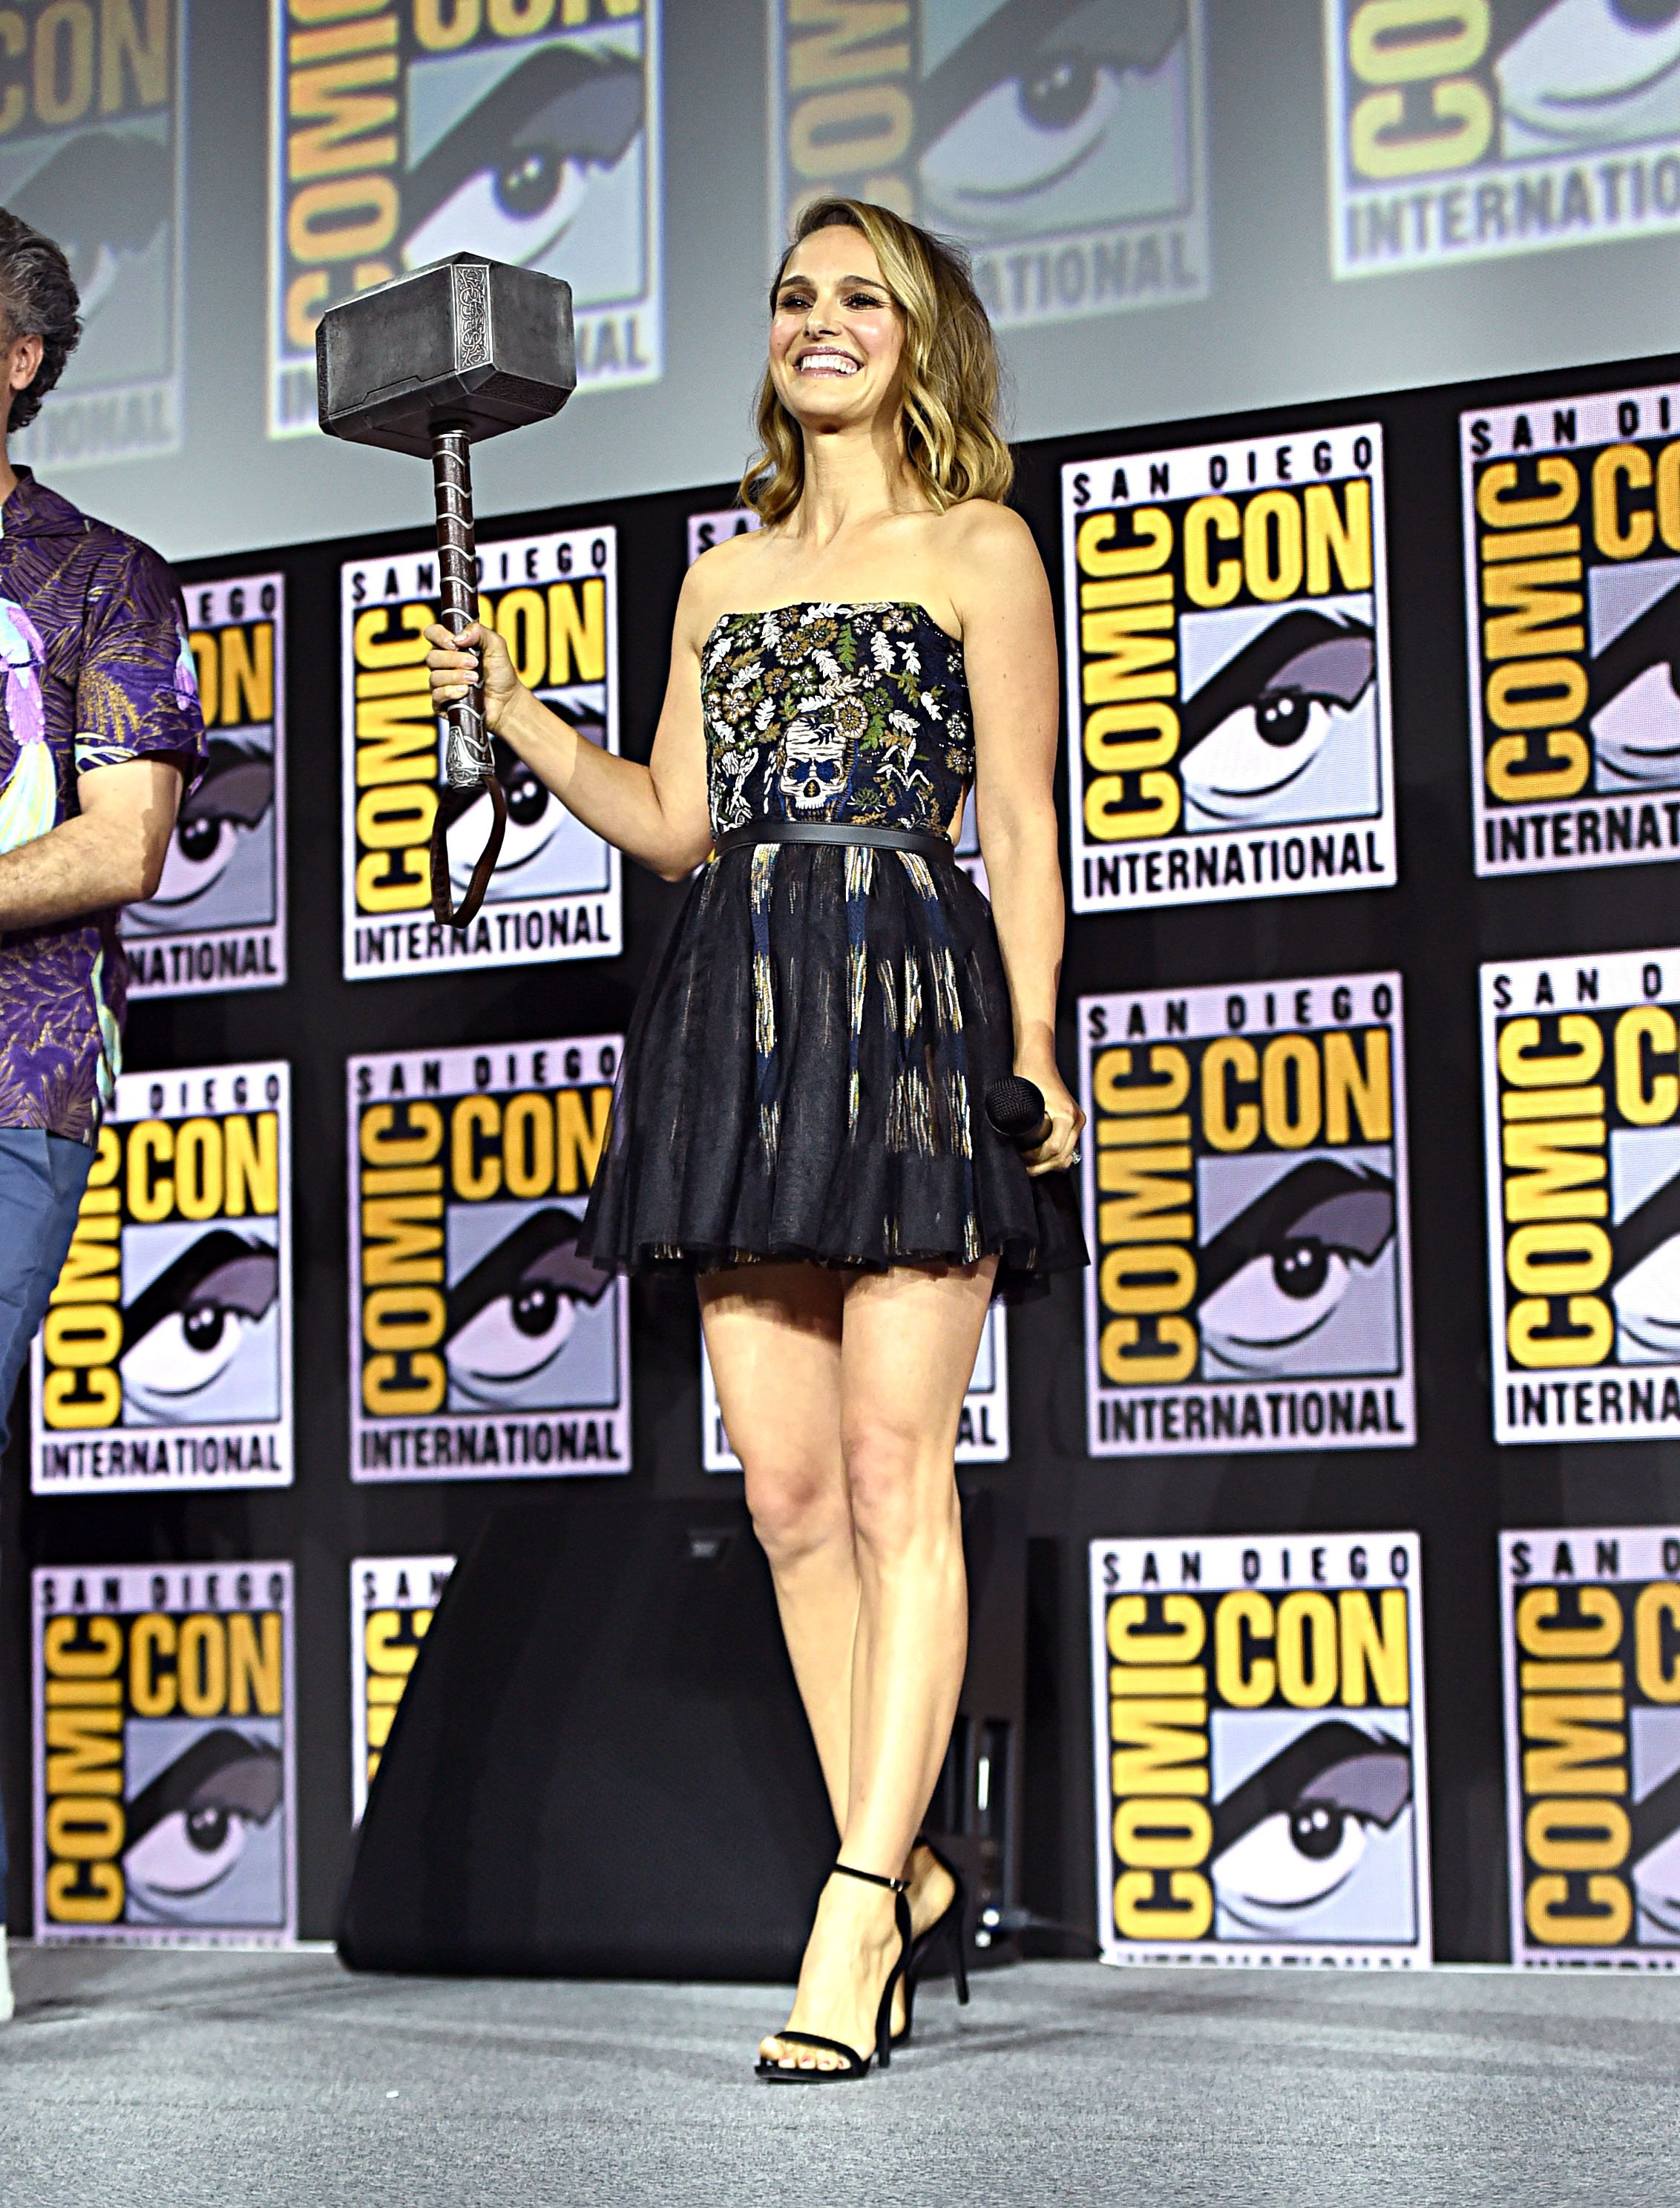 Natalie Portman of Marvel Studios' 'Thor: Love and Thunder' at the San Diego Comic-Con International 2019 Marvel Studios Panel in Hall H on July 20, 2019 in San Diego, California. (Photo by Alberto E. Rodriguez/Getty Images for Disney)